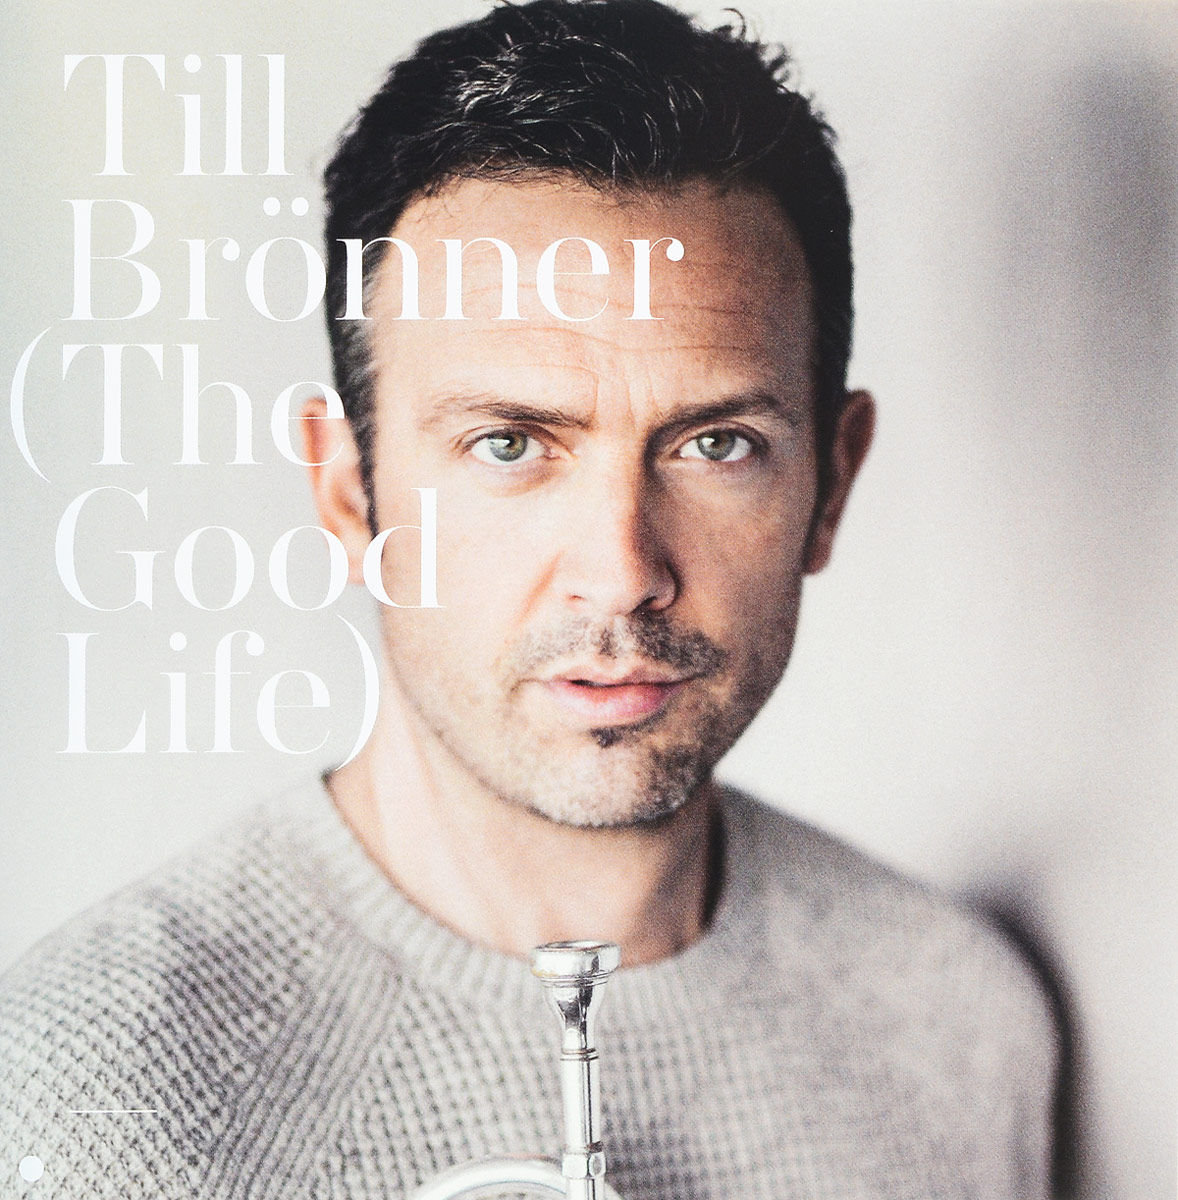 Тилл Броннер Till Bronner. The Good Life цены онлайн